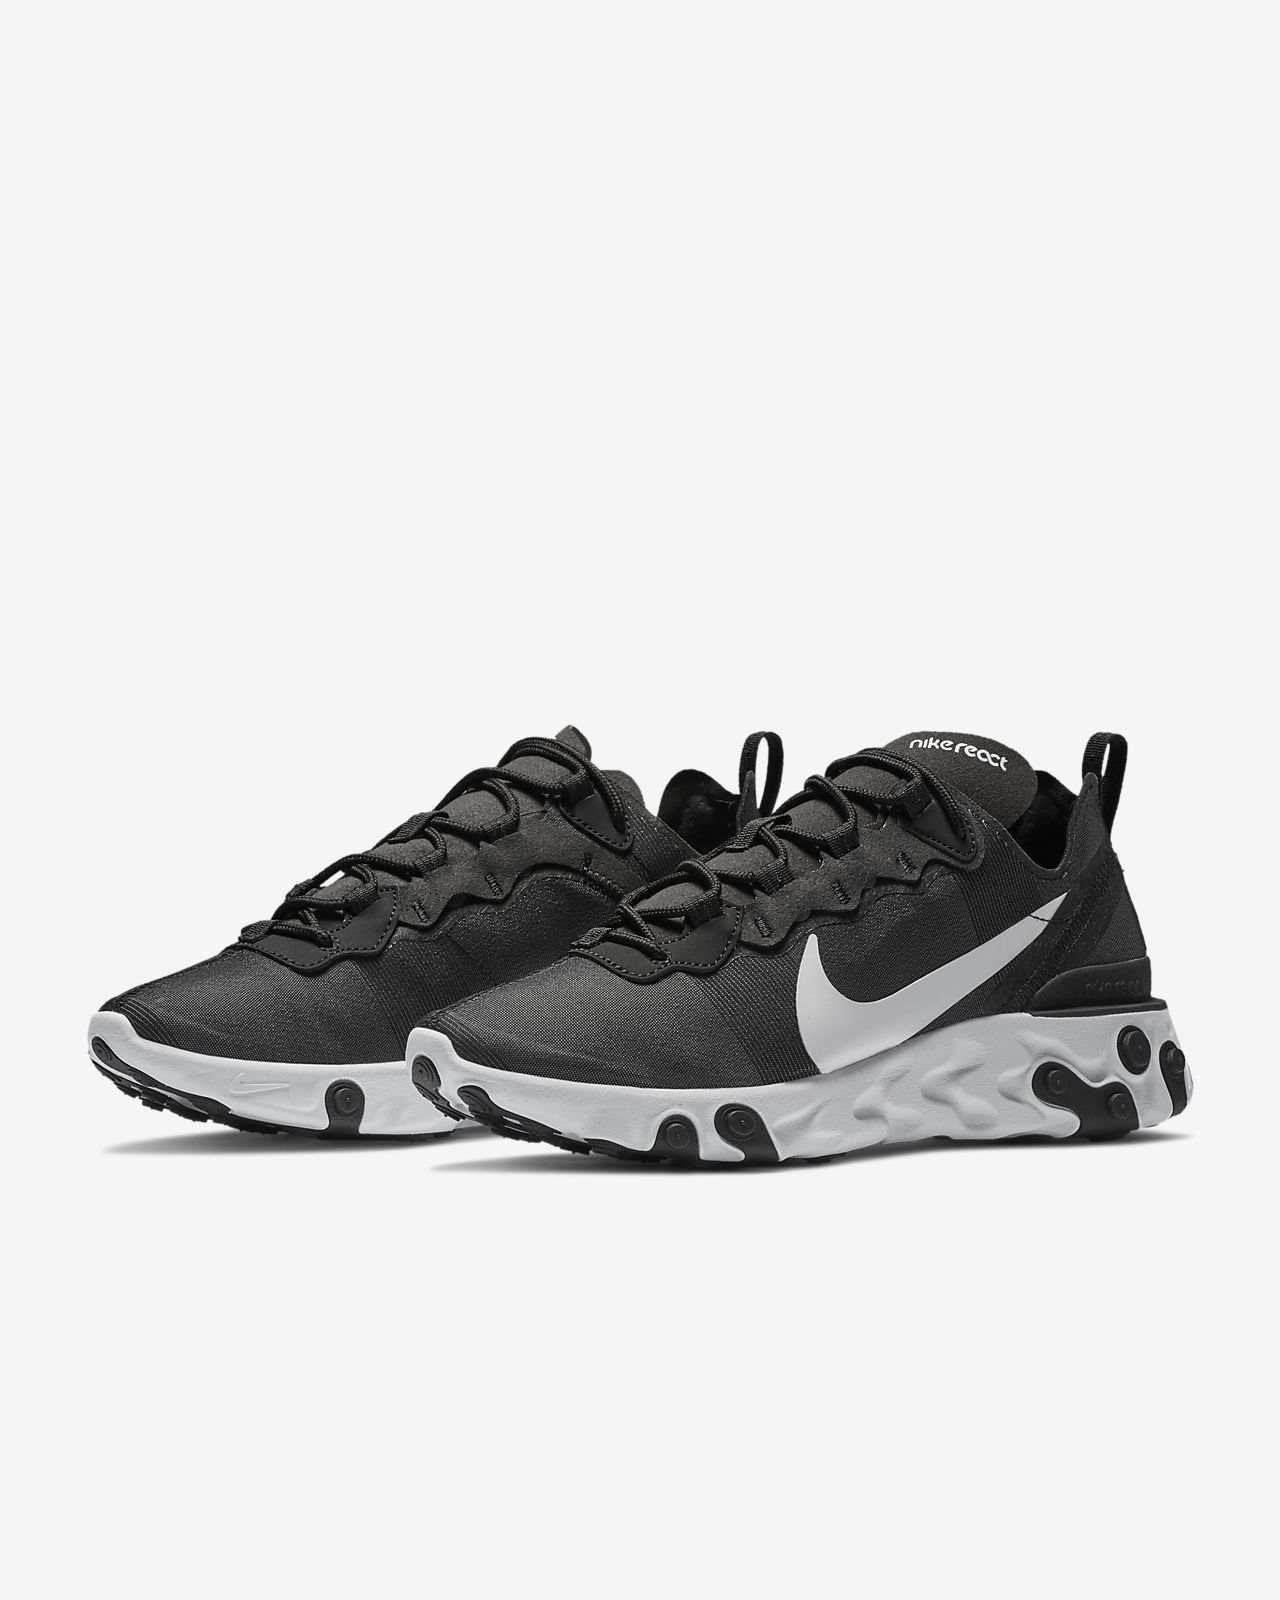 Femme React Nike Chaussure Pour Element 55 xOf51n8